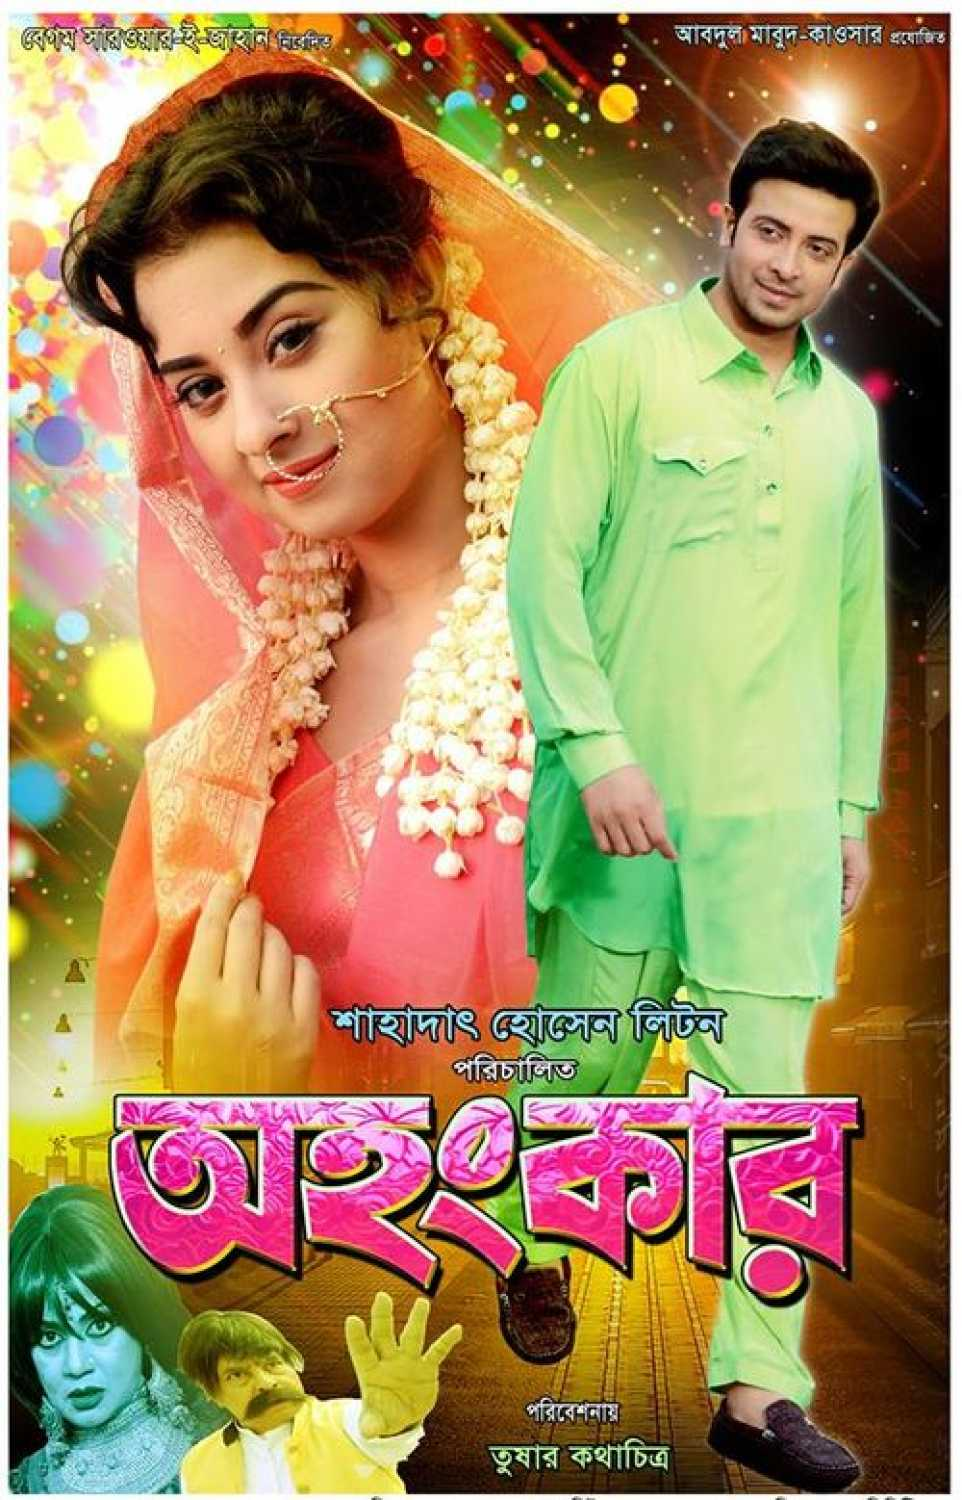 Ohongkar (2020) Bangla Full Movie 720p Bluray x264 AAC 900MB Download